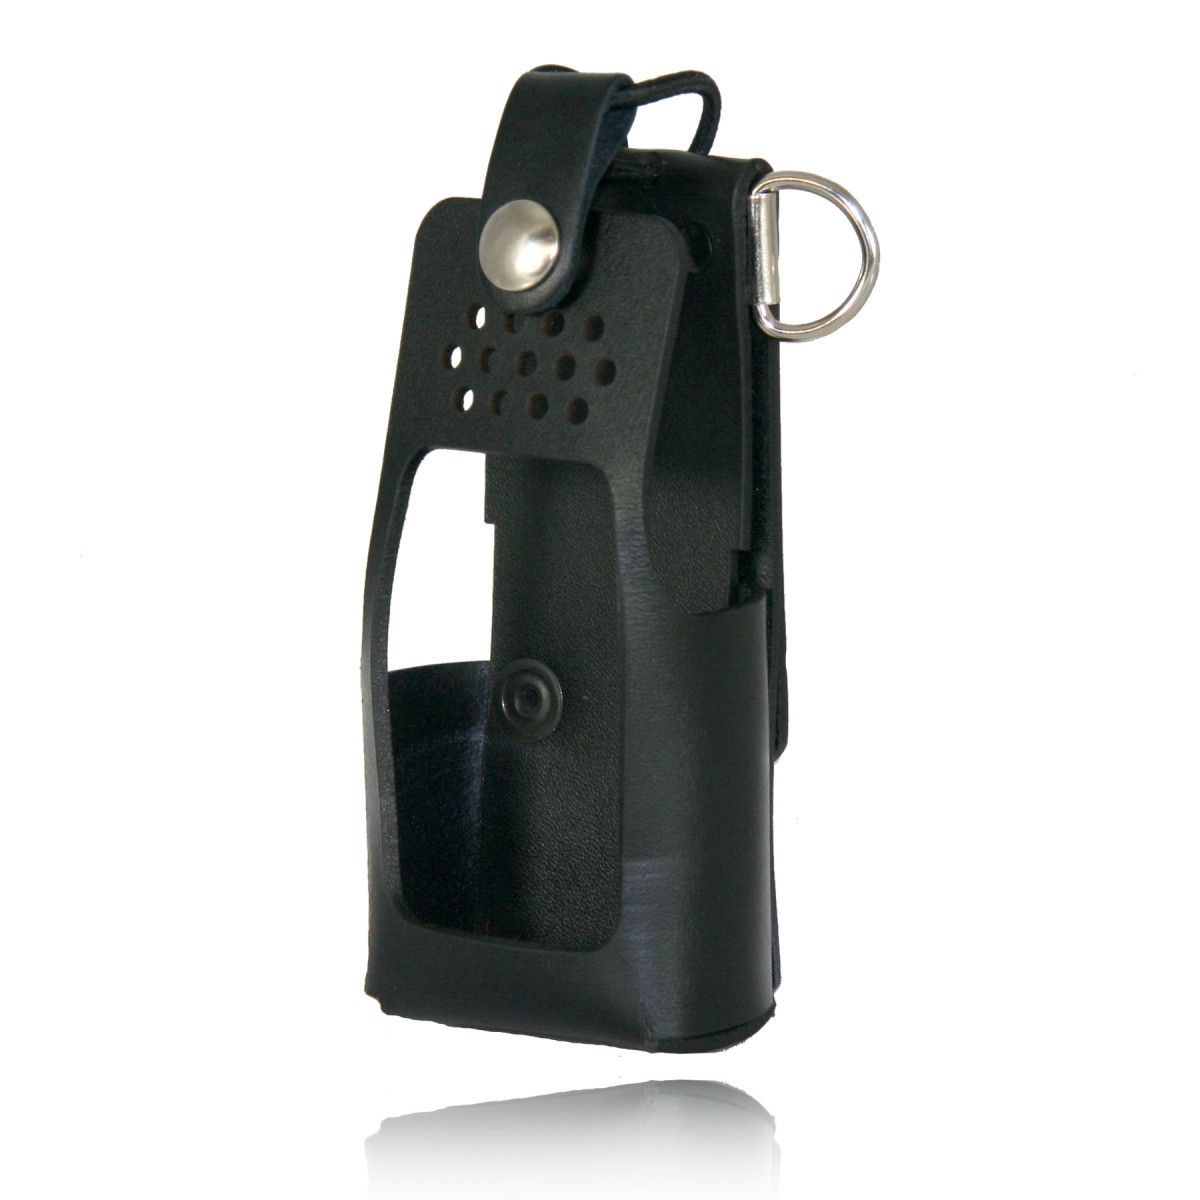 Firefighter's Radio Holder for Motorola HT750/ 1250